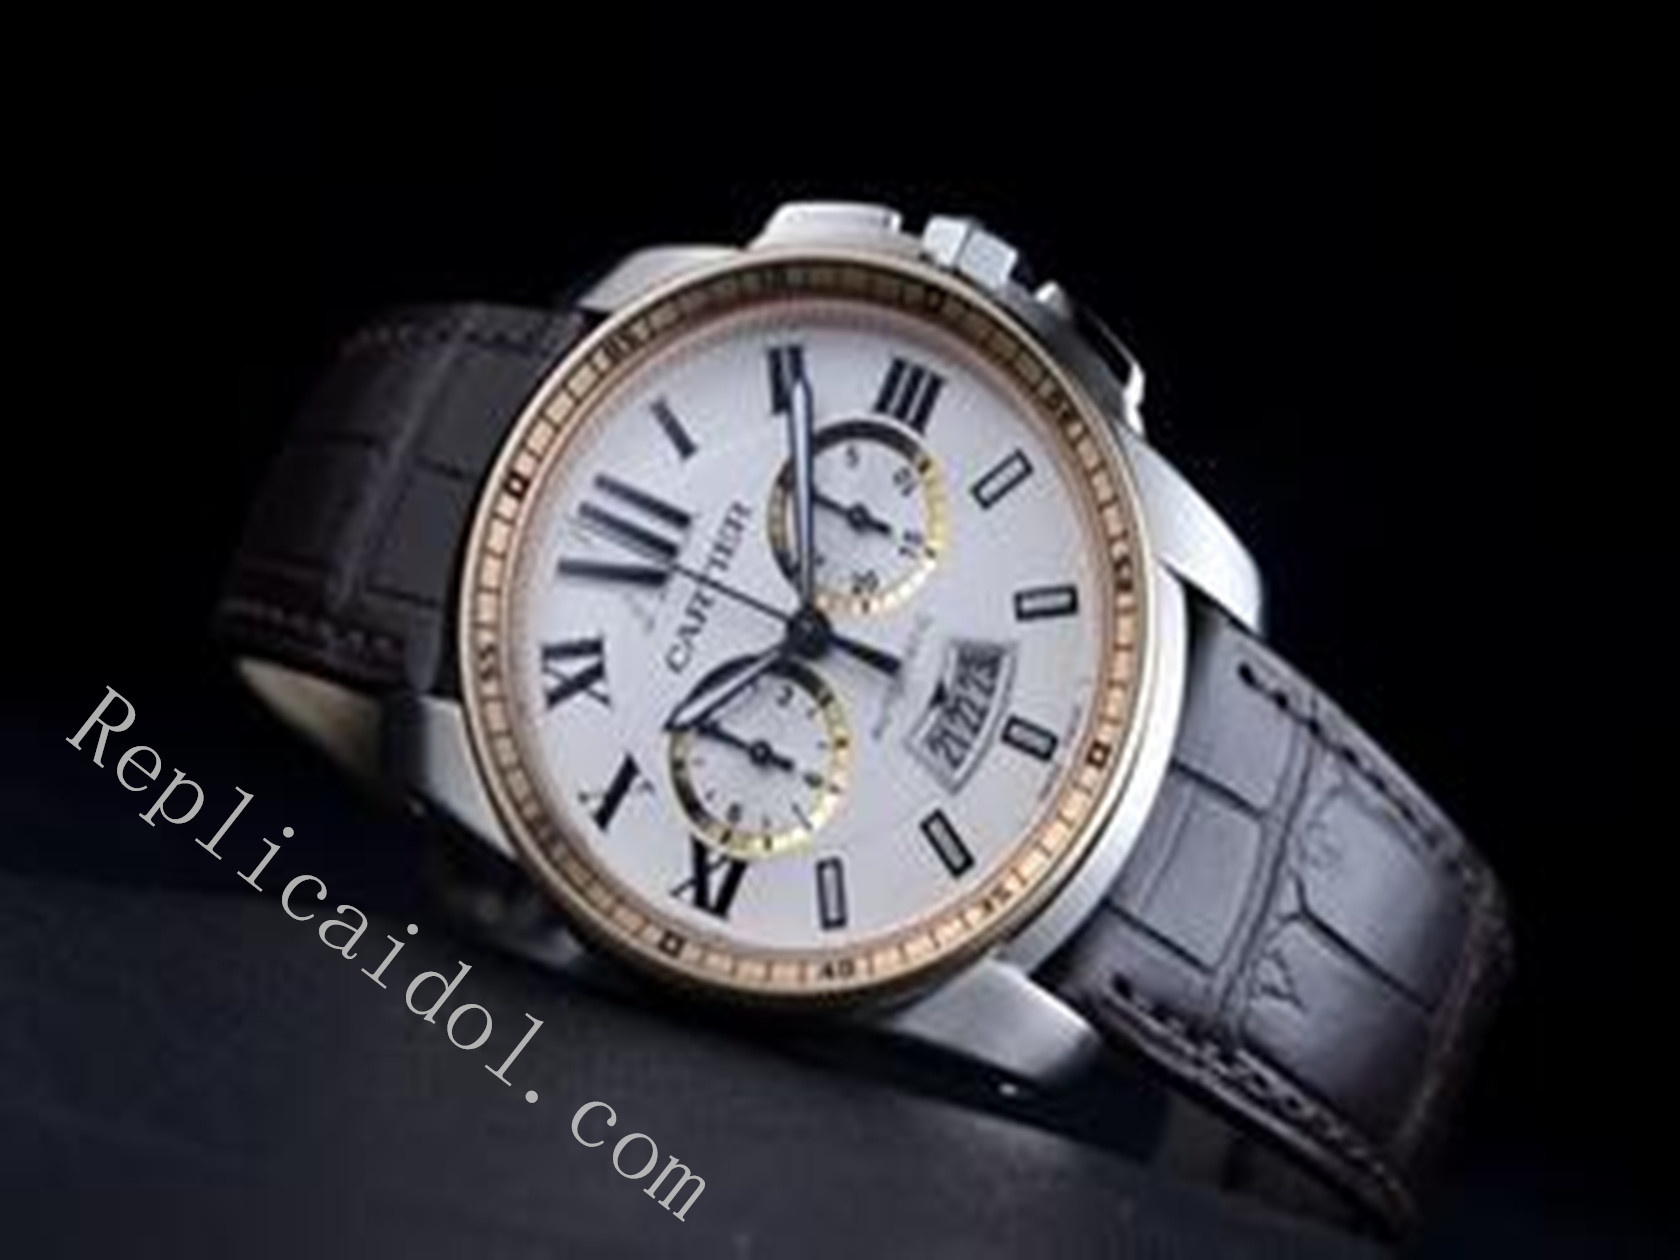 Replica watches quality - High Quality Replica Cartier Watch Is Your Ideal Choice